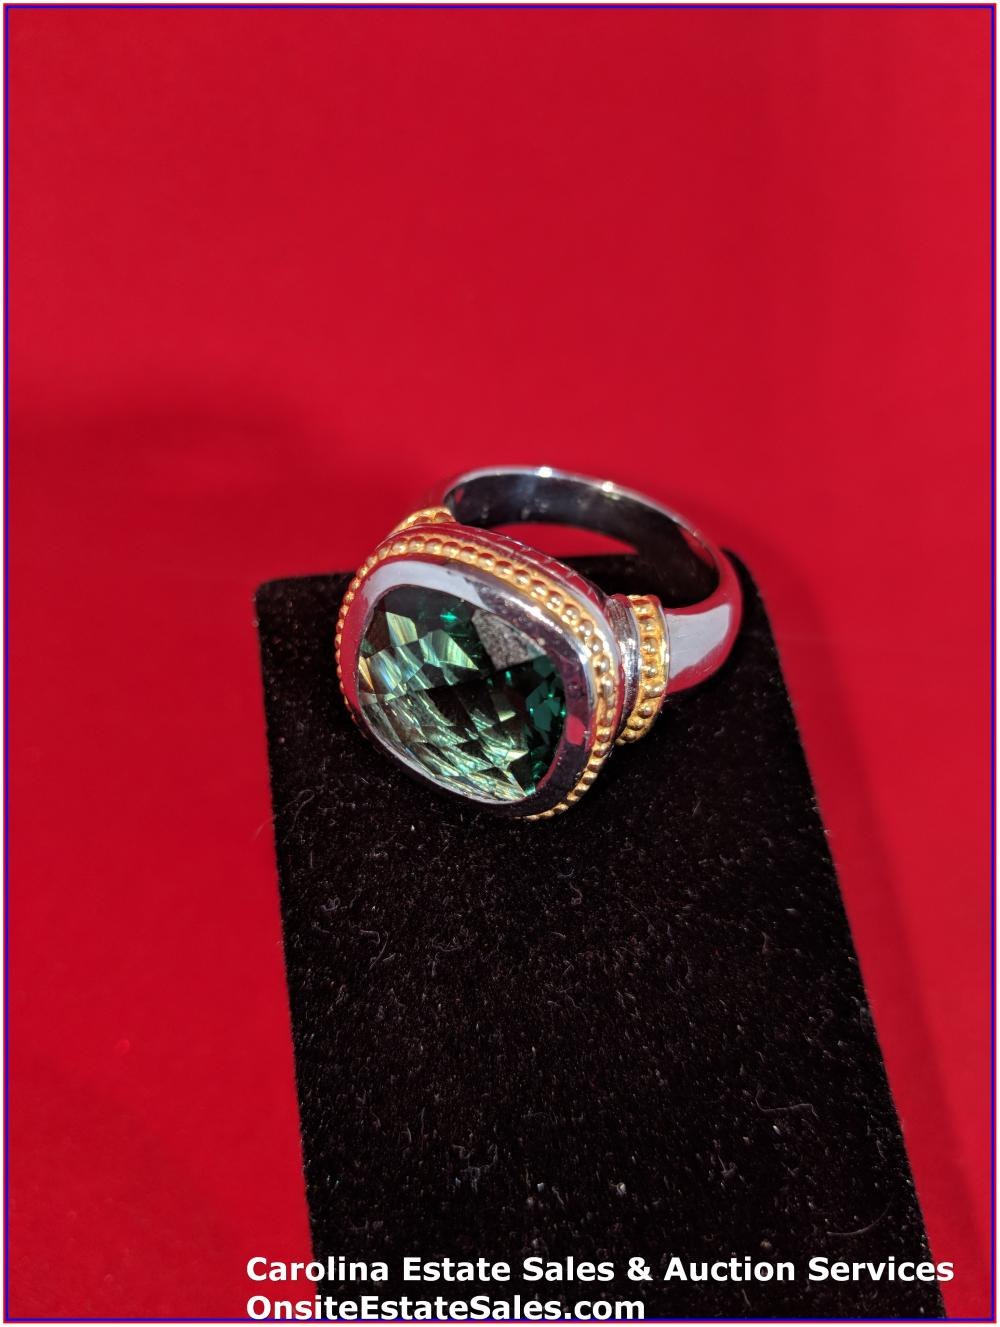 925 Gem Ring Sterling 20 Grams Total Weight Includes Stone